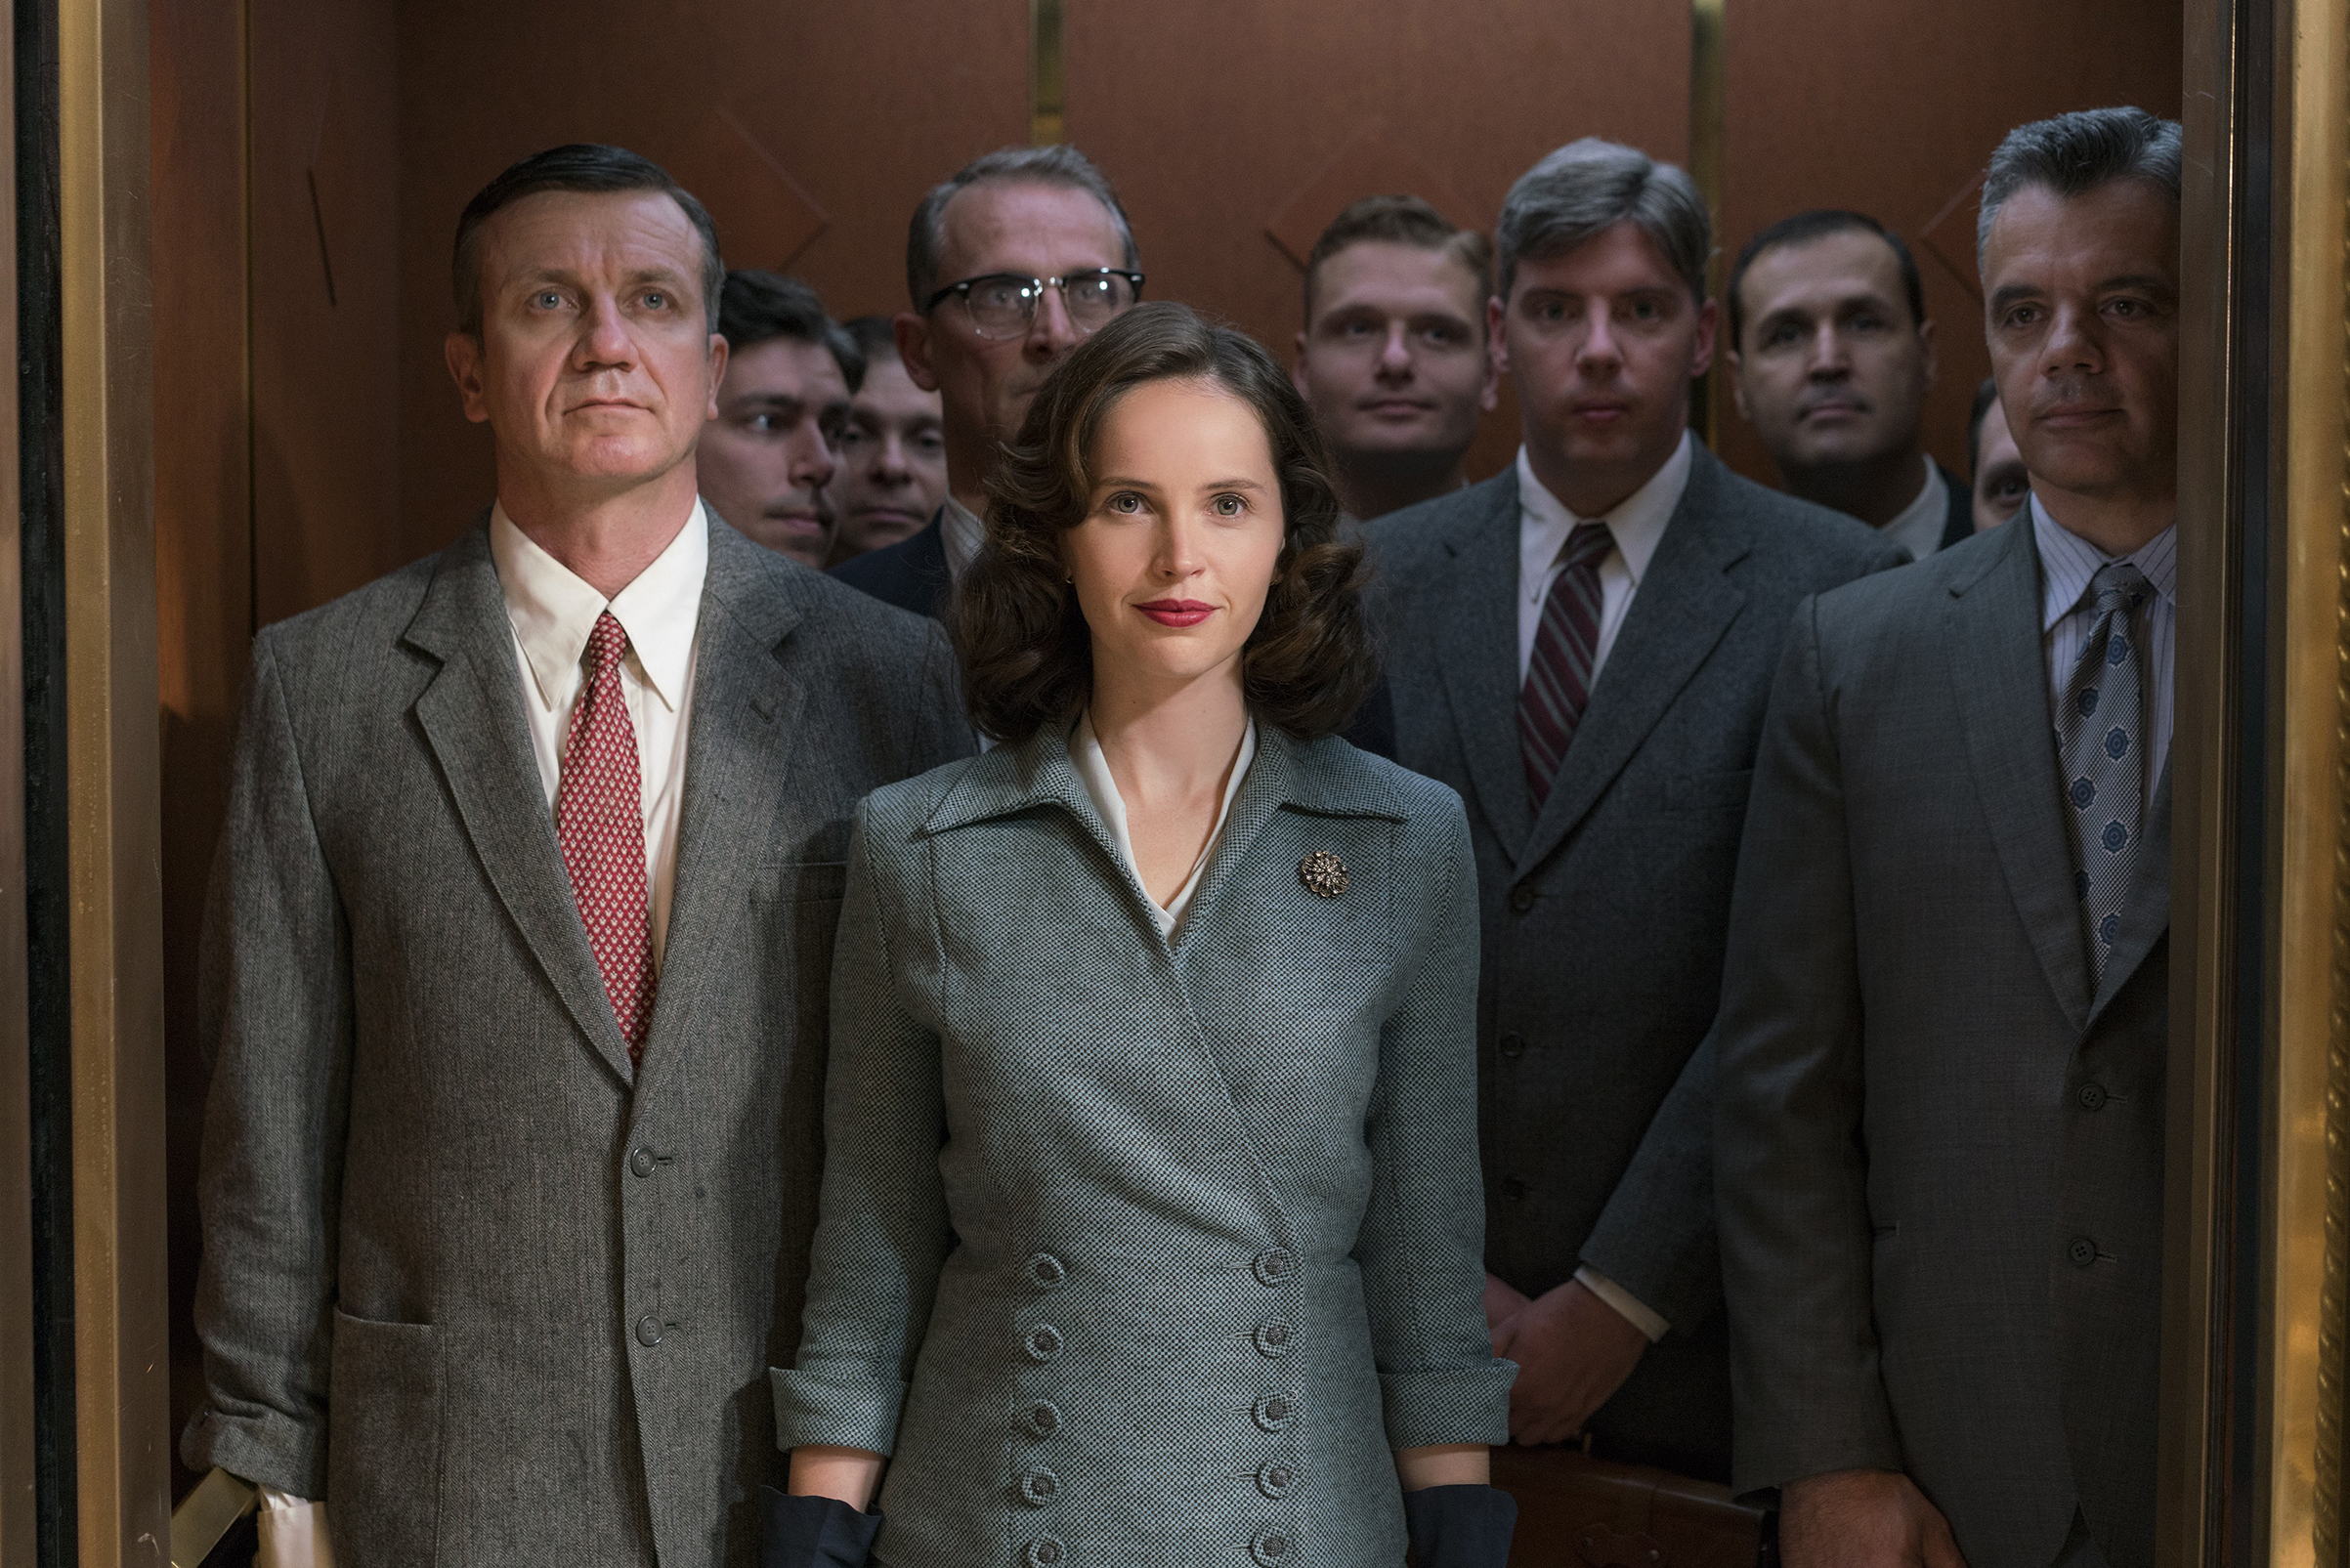 Jones as the young Ruth Bader Ginsburg: distinguishing herself in a sea of men